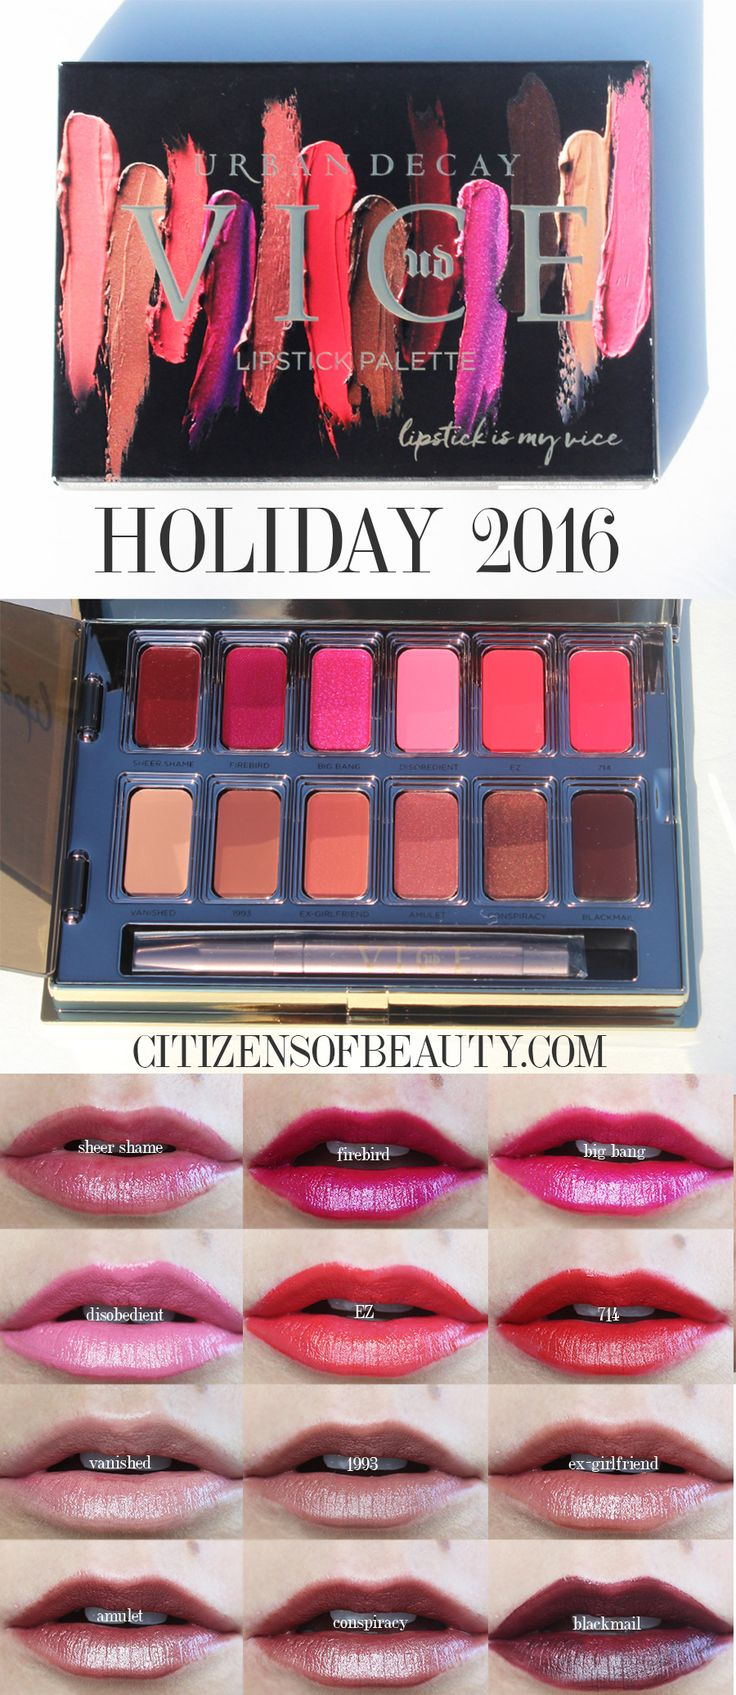 The Urban Decay Vice Lipstick Palettes in Junkie and Blackmail are two hot beauty products you are going to want to grab from the Urban Decay Holiday 2016 collection this September! Not only are both lipsticks palettes affordable (only $35), each one has 12 gorgeous colors that are perfect for fall and winter beauty.